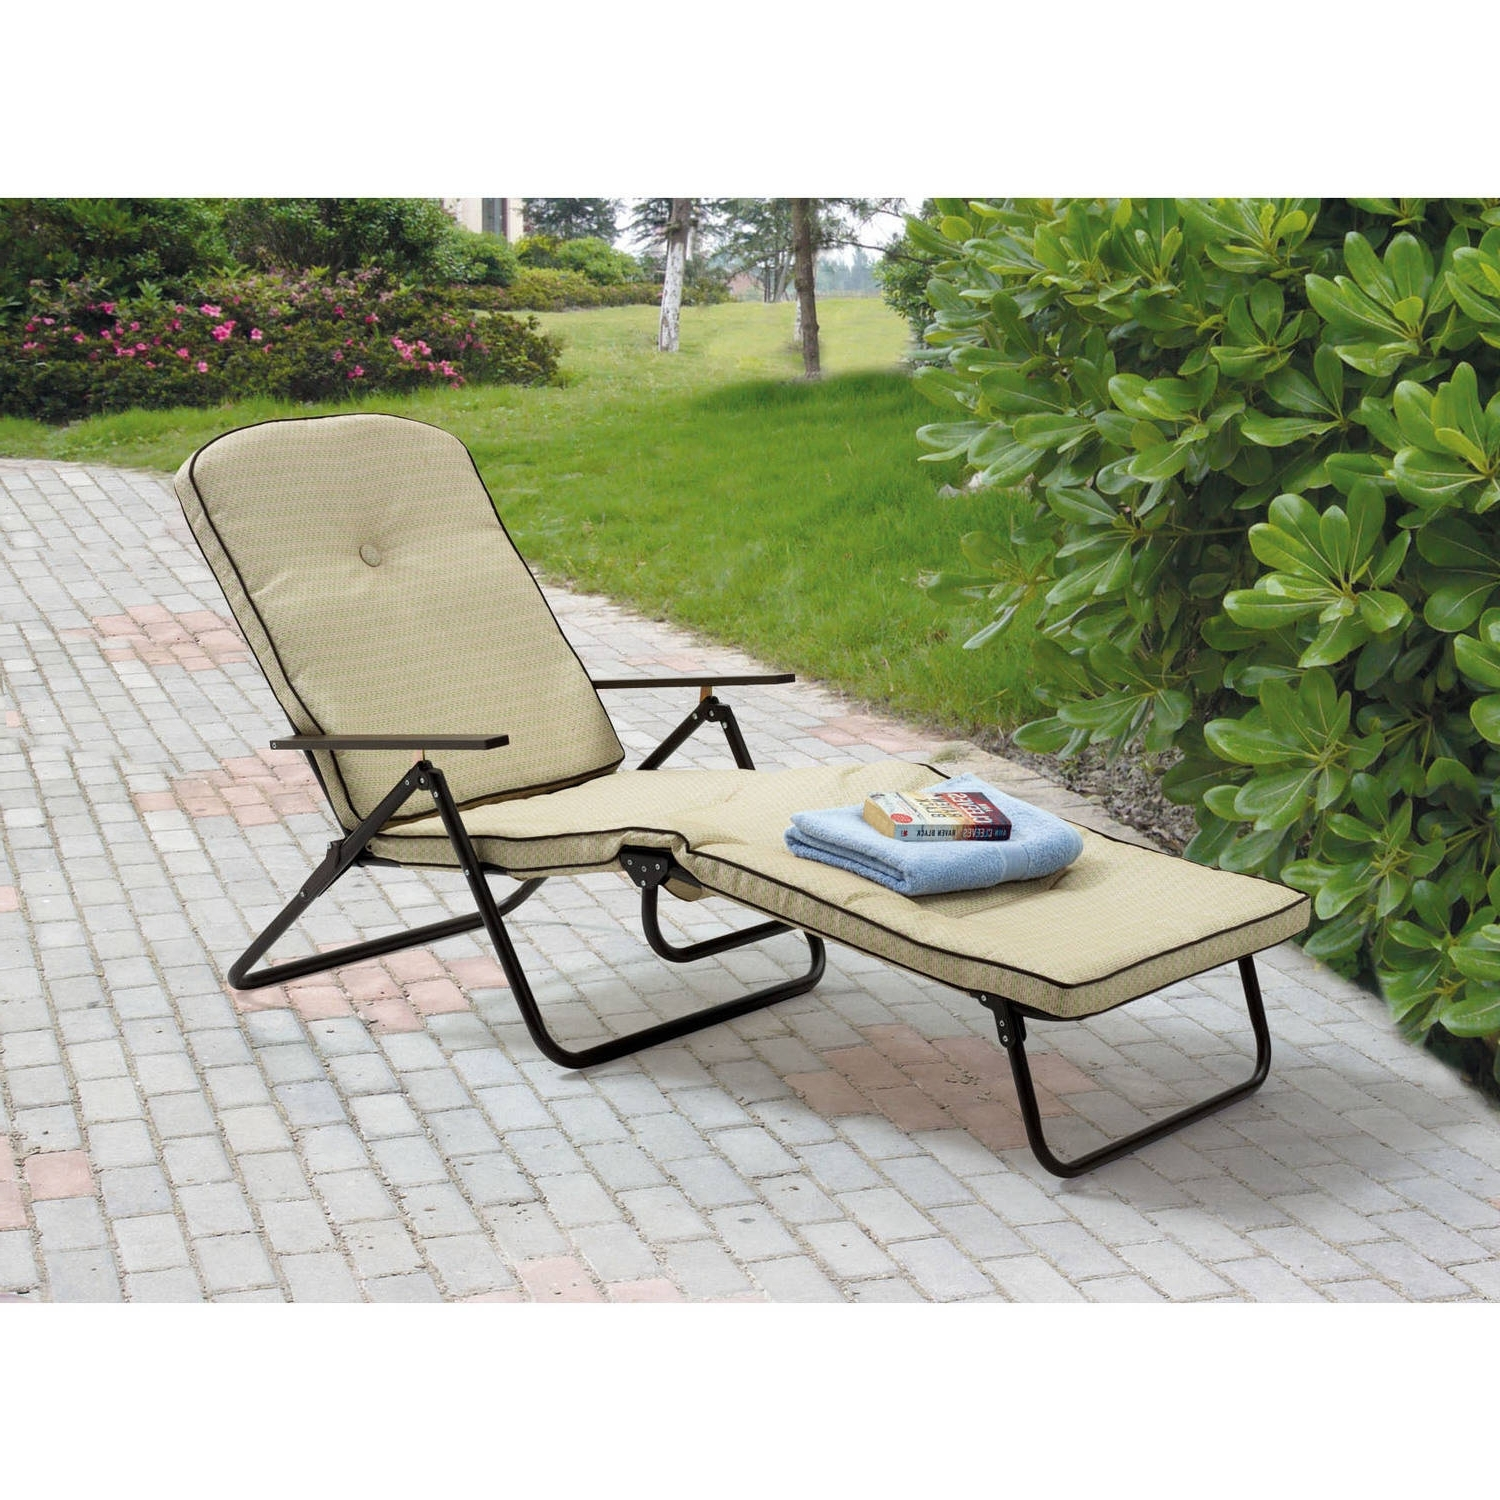 Mainstays Sand Dune Outdoor Padded Folding Chaise Lounge, Tan Intended For Most Current Folding Chaise Lounge Lawn Chairs (View 10 of 15)